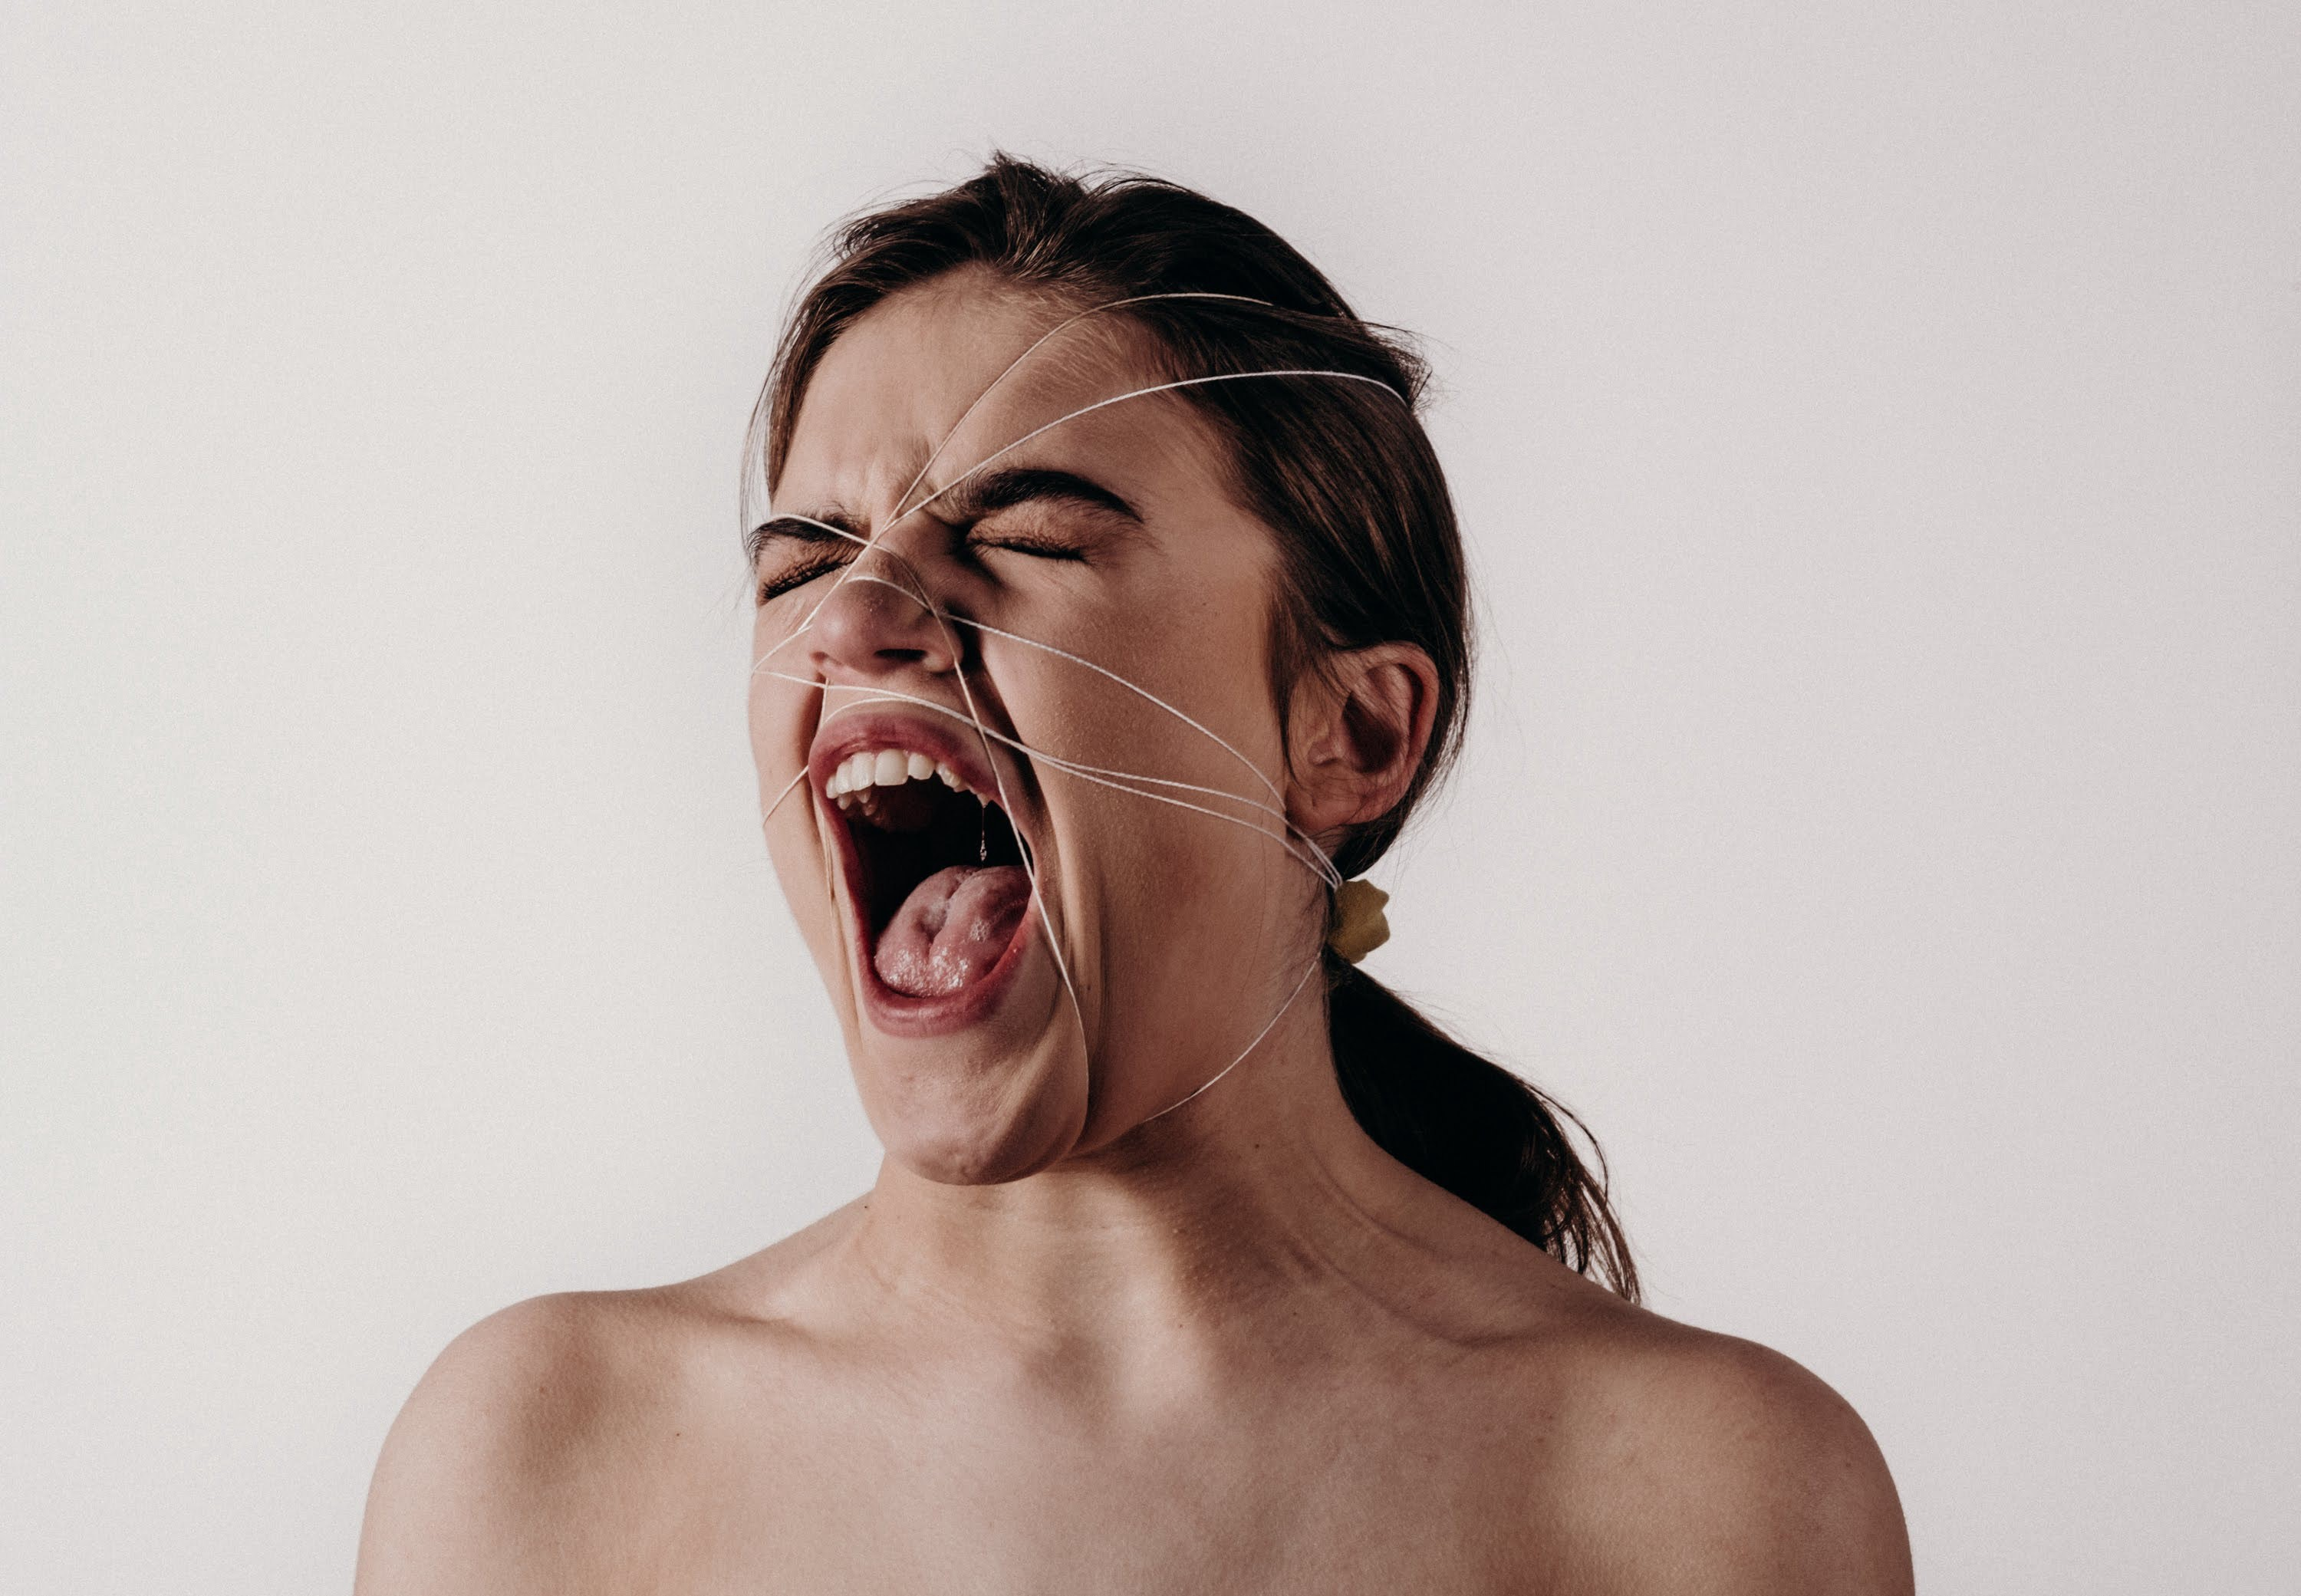 woman with floss wrapped around her head yelling